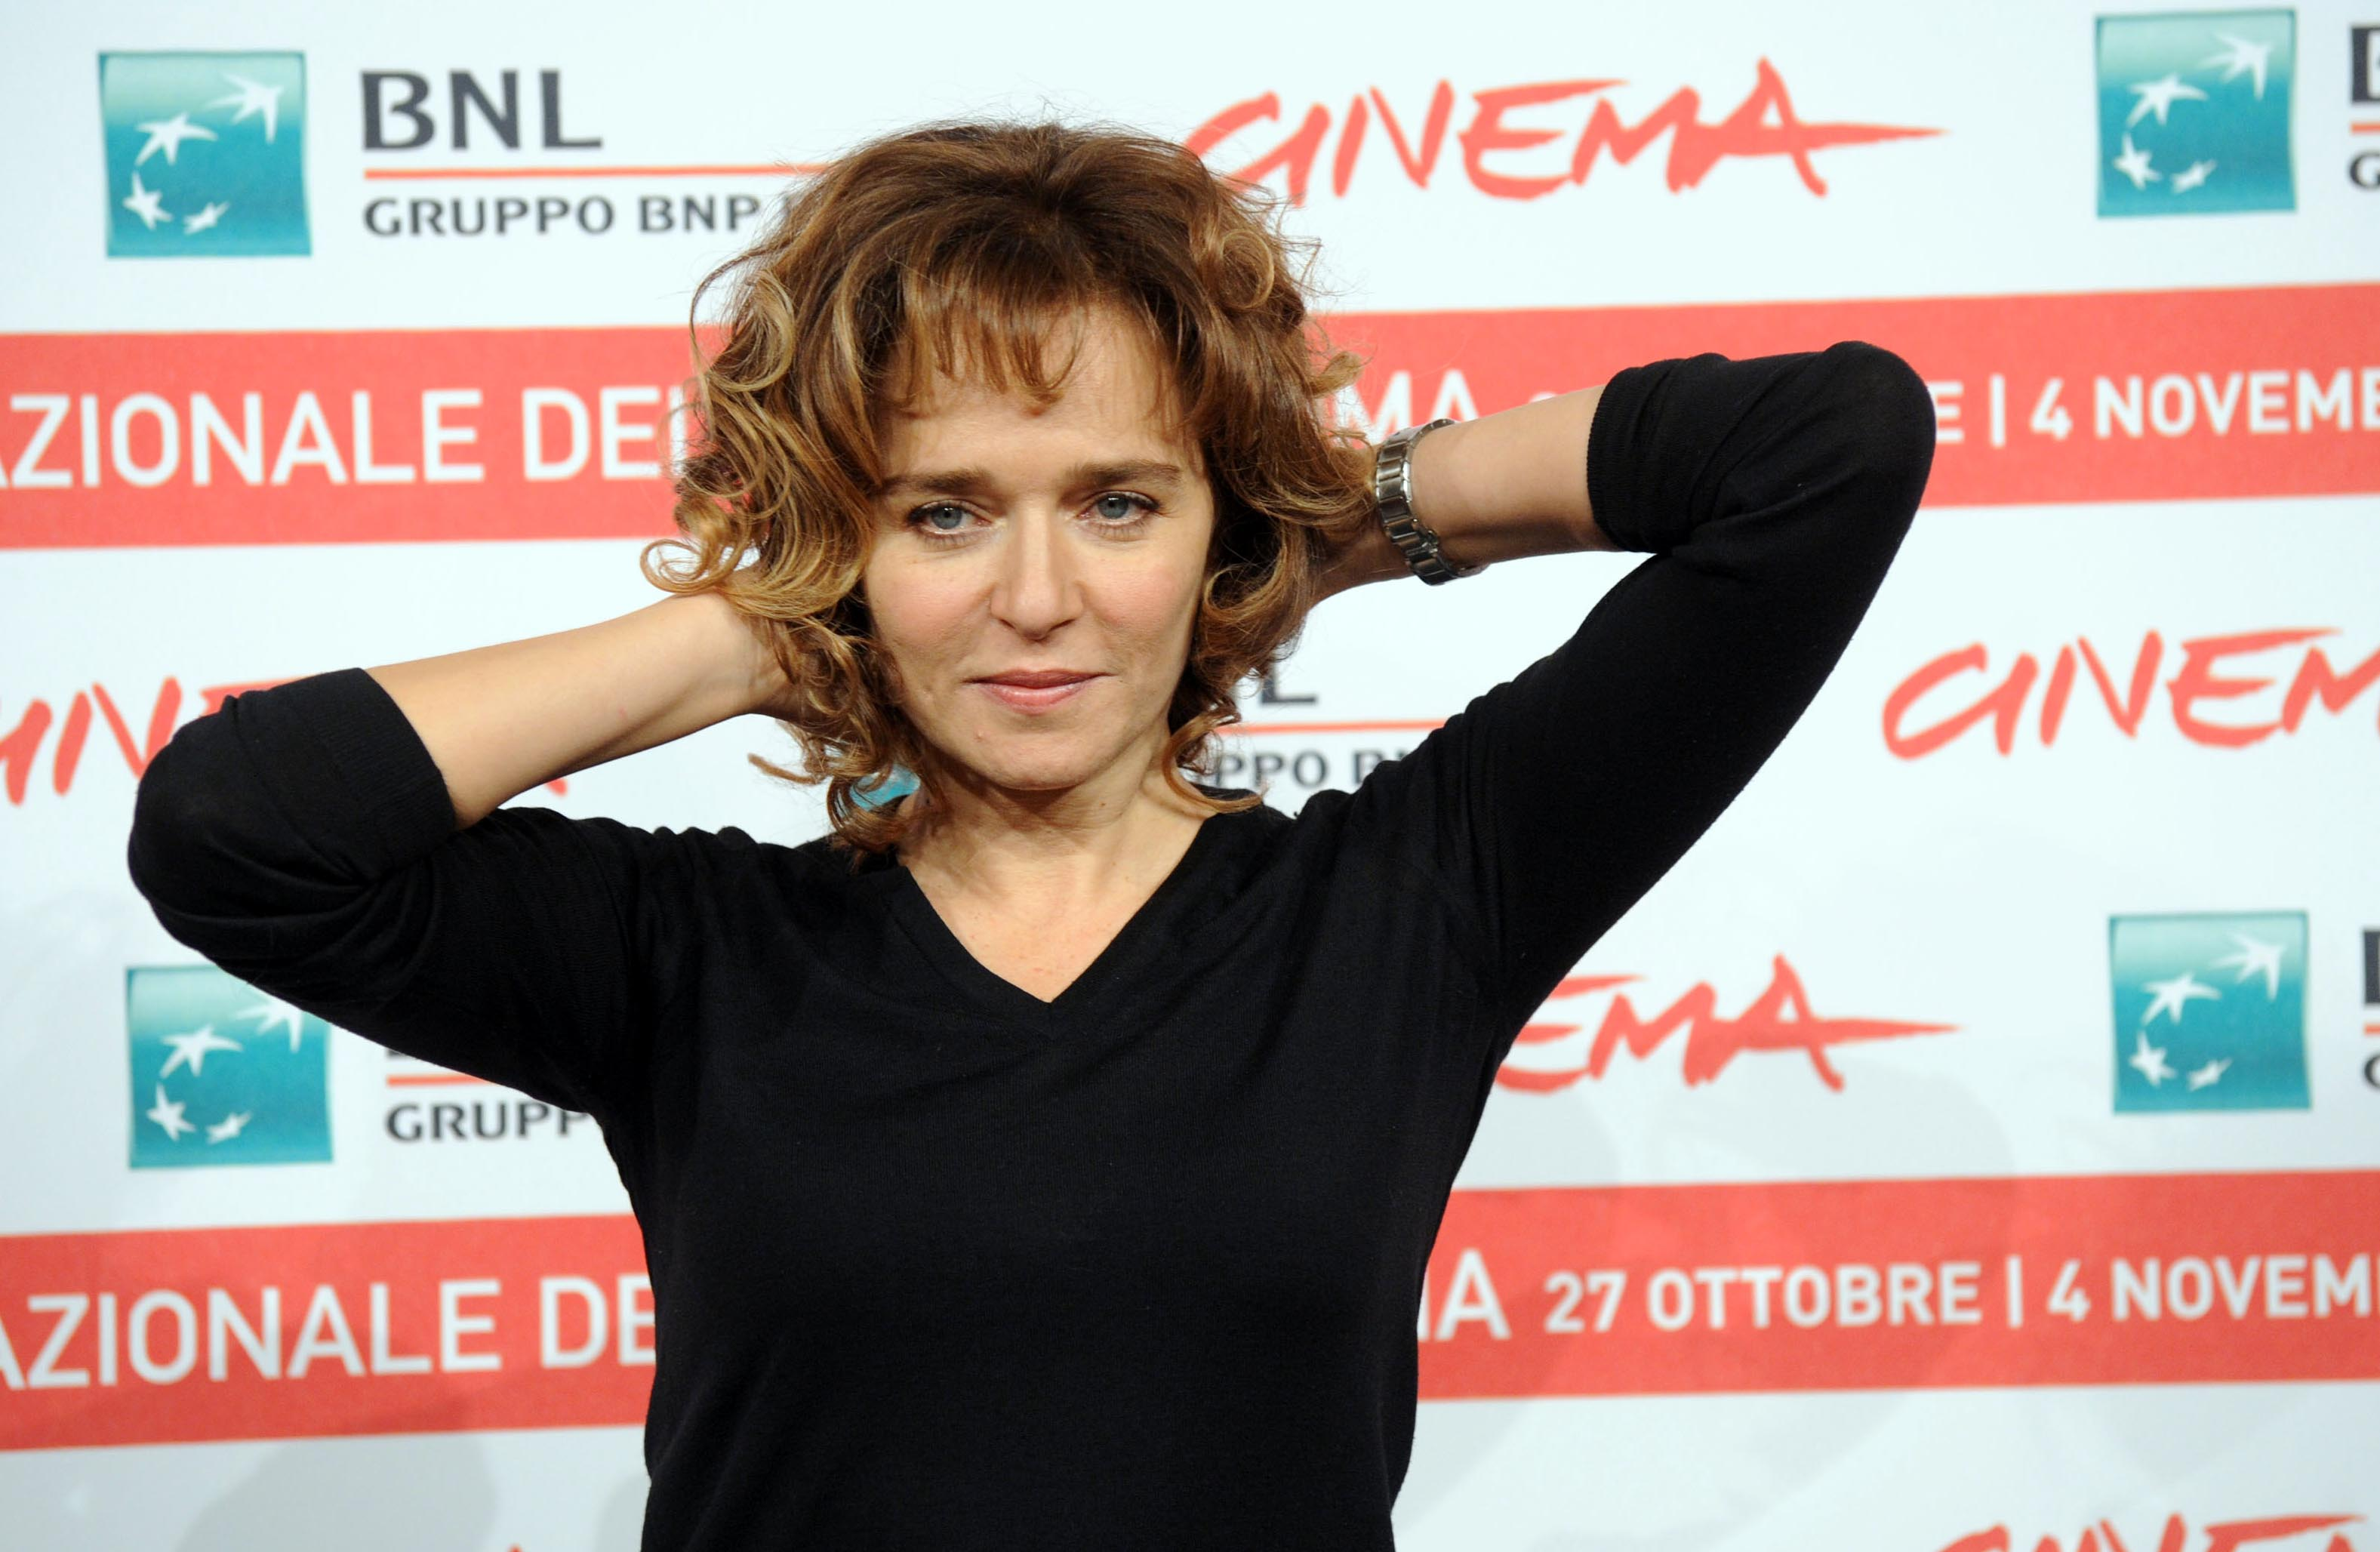 Valeria Golino, la bellezza del cinema italiano